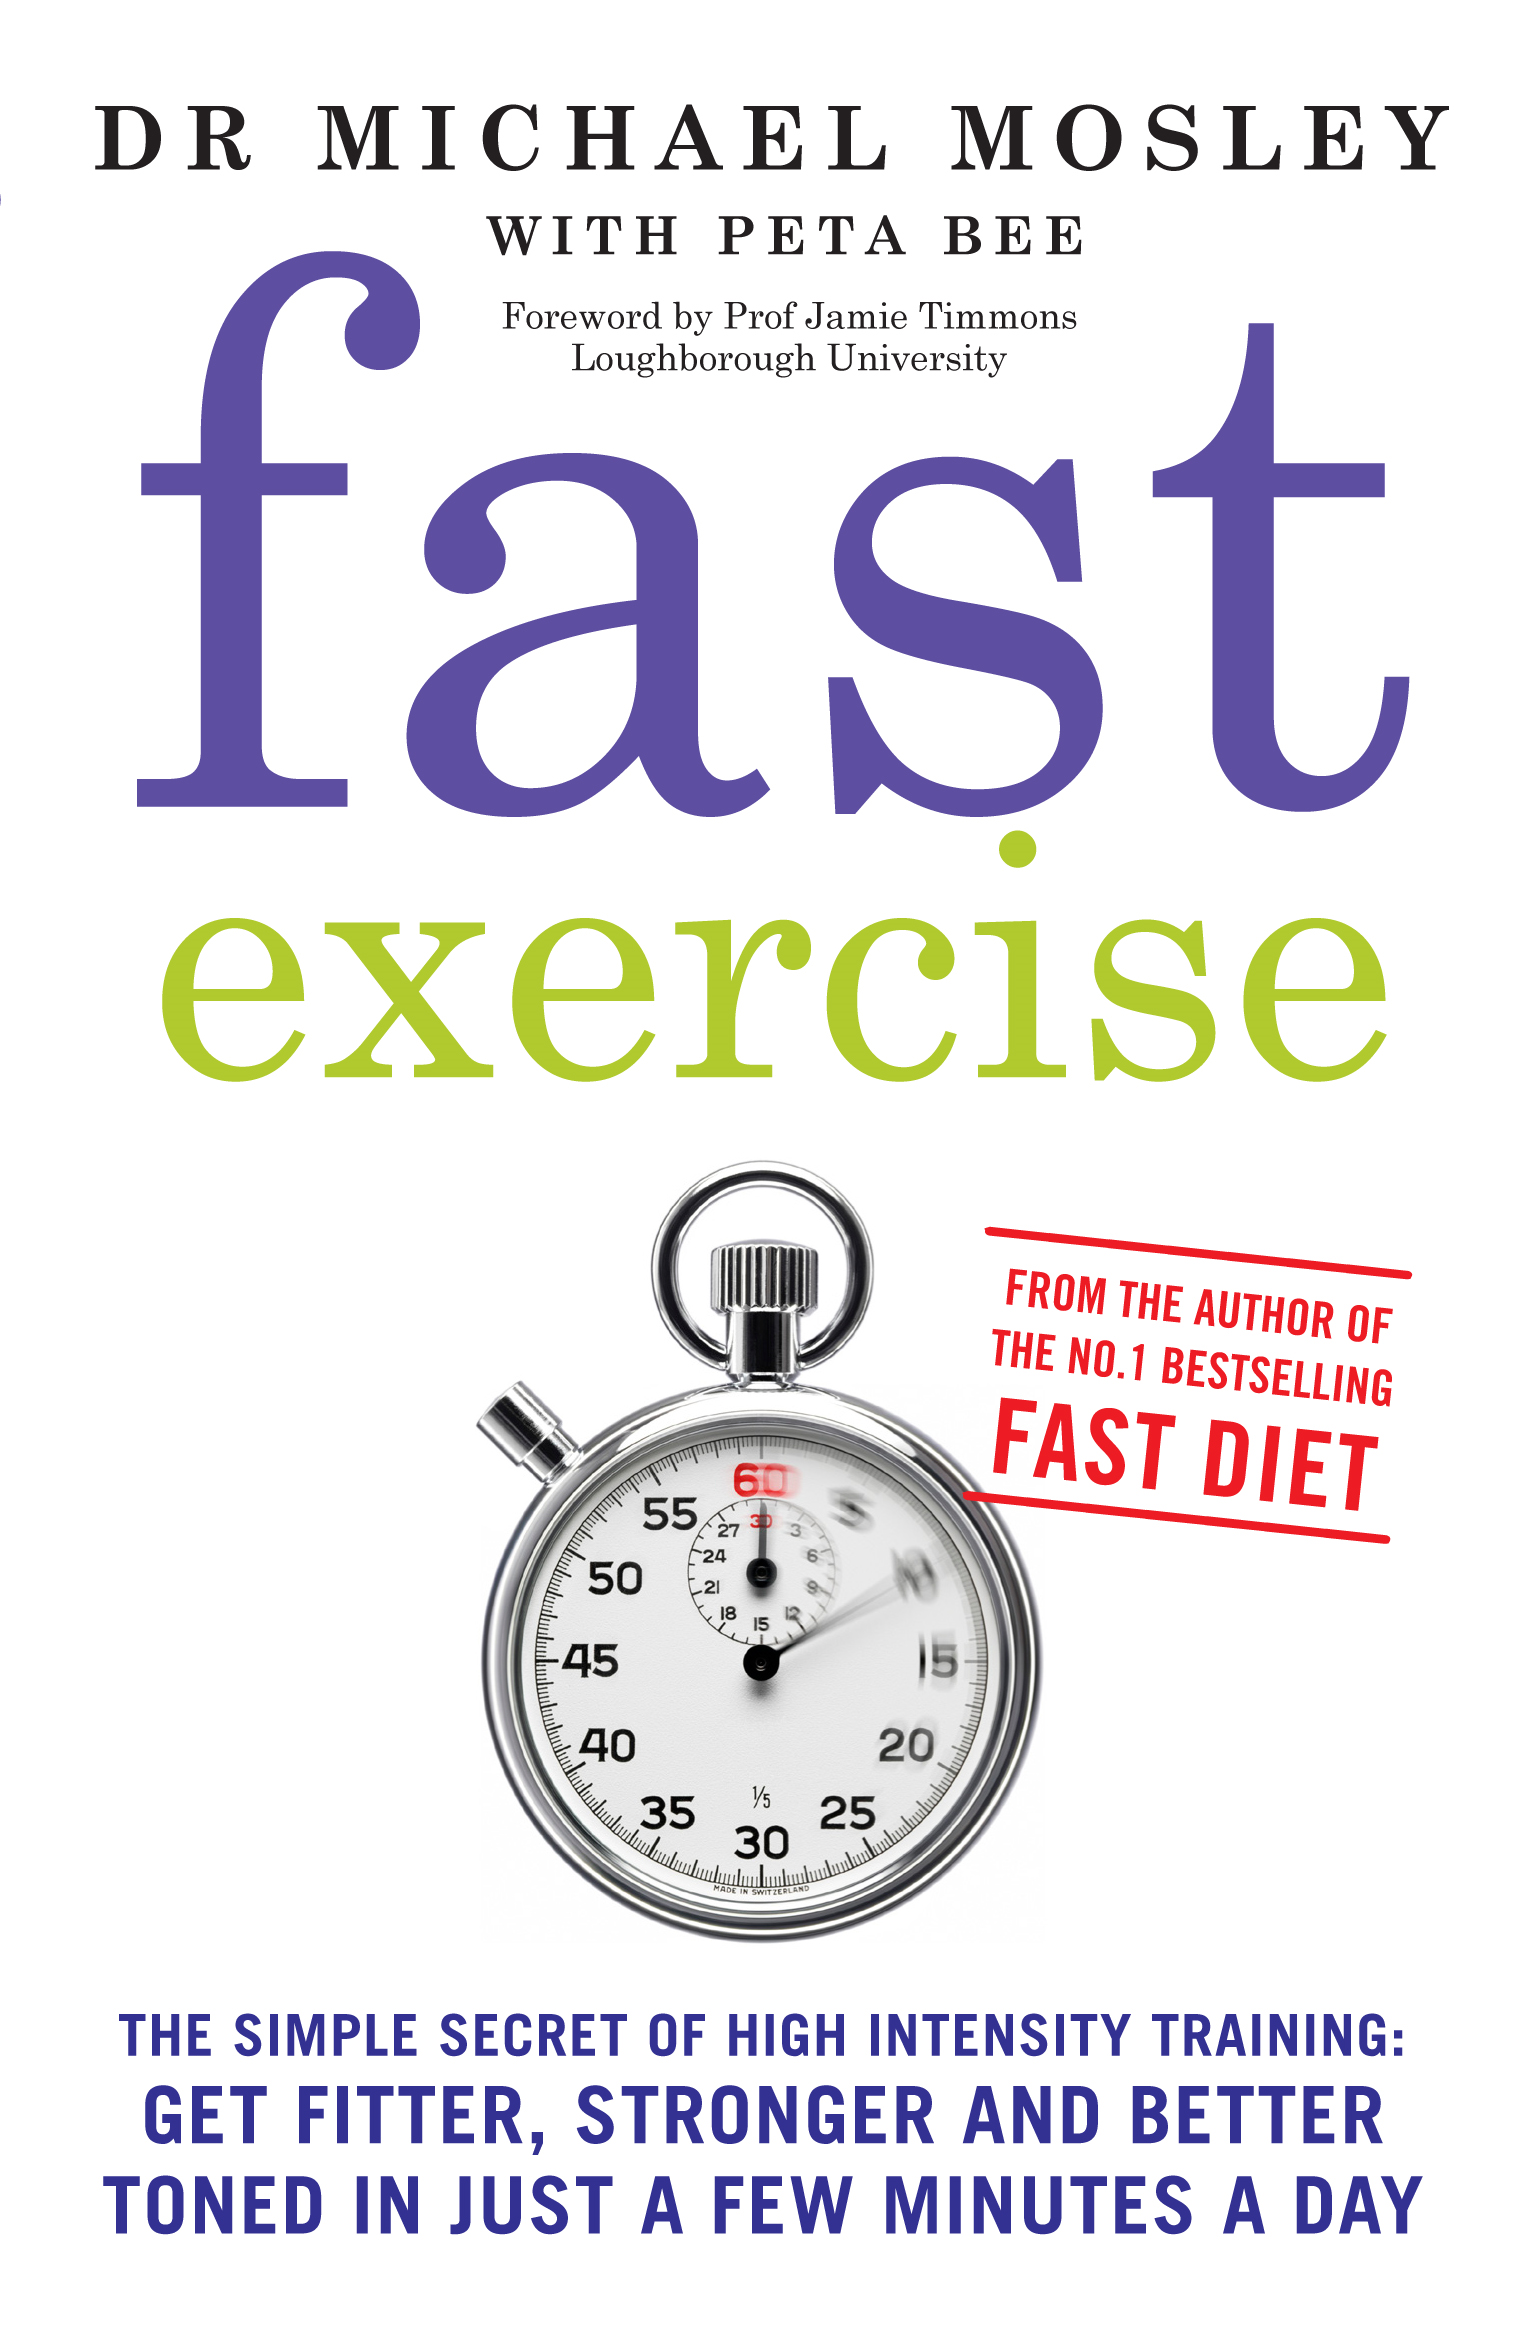 Fast Exercise The simple secret of high intensity training: get fitter, stronger and better toned in just a few minutes a day